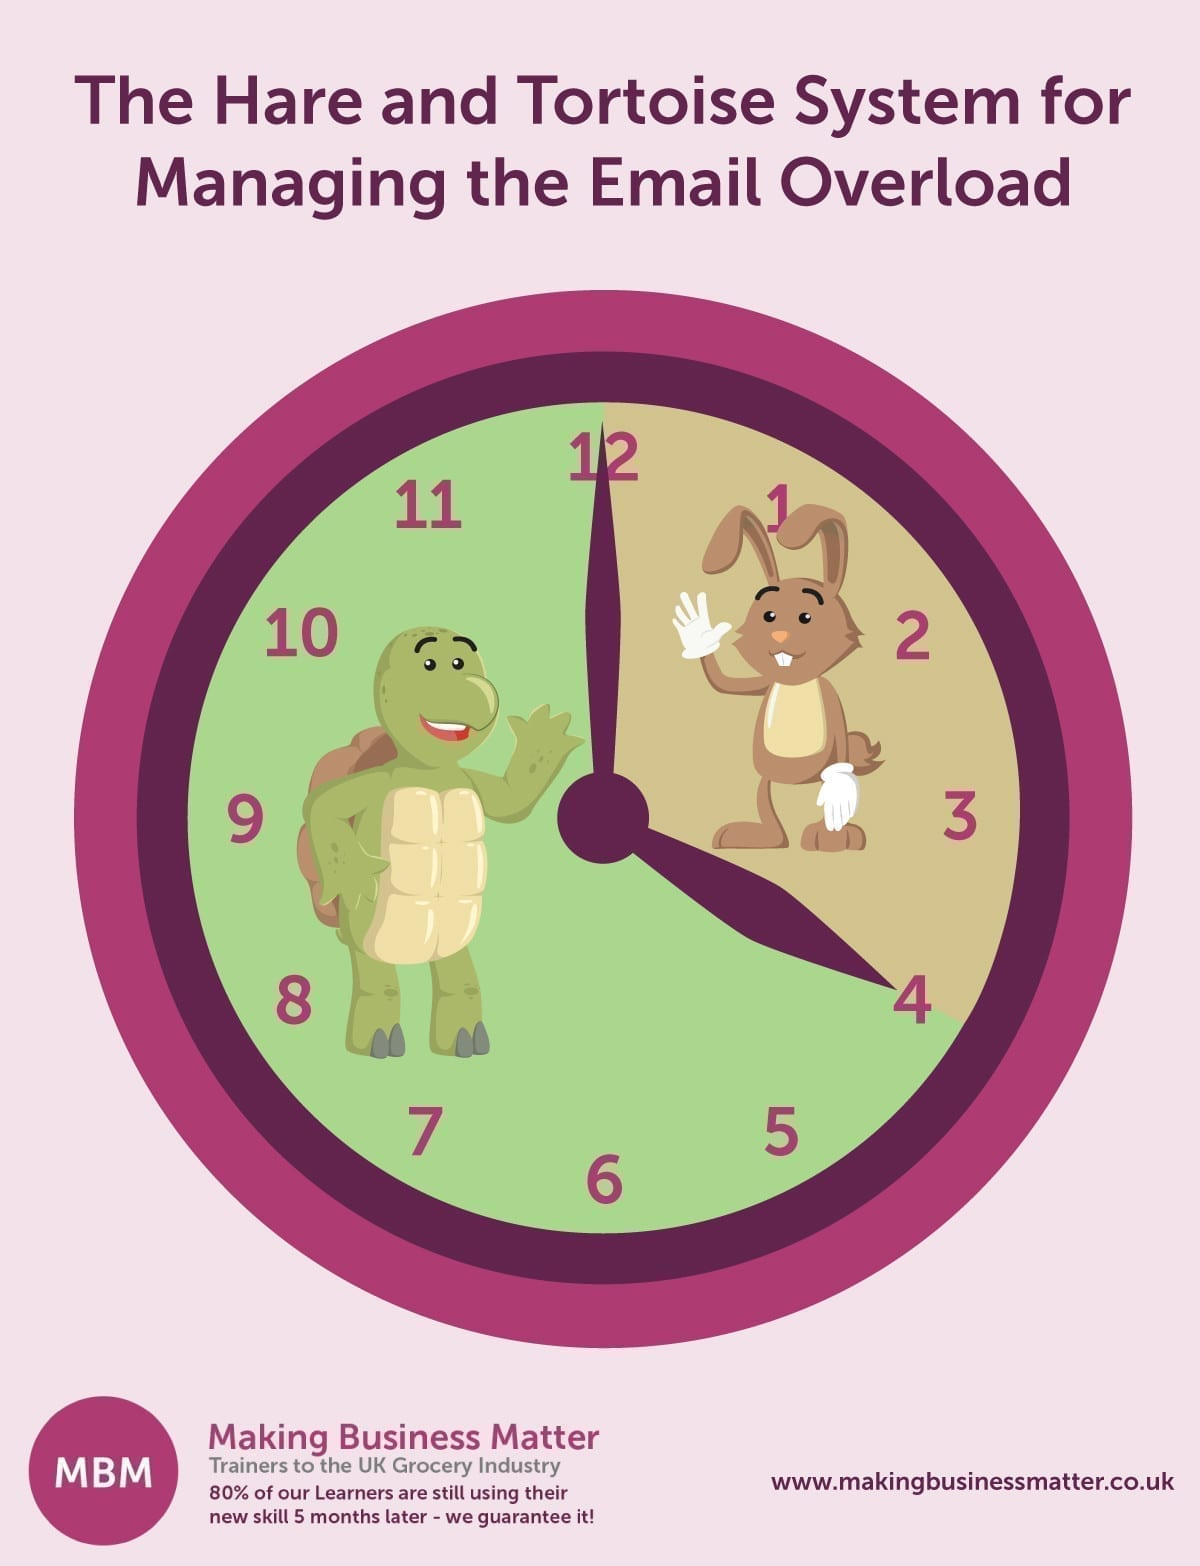 The Hare and Tortoise System for Managing the Email Overload